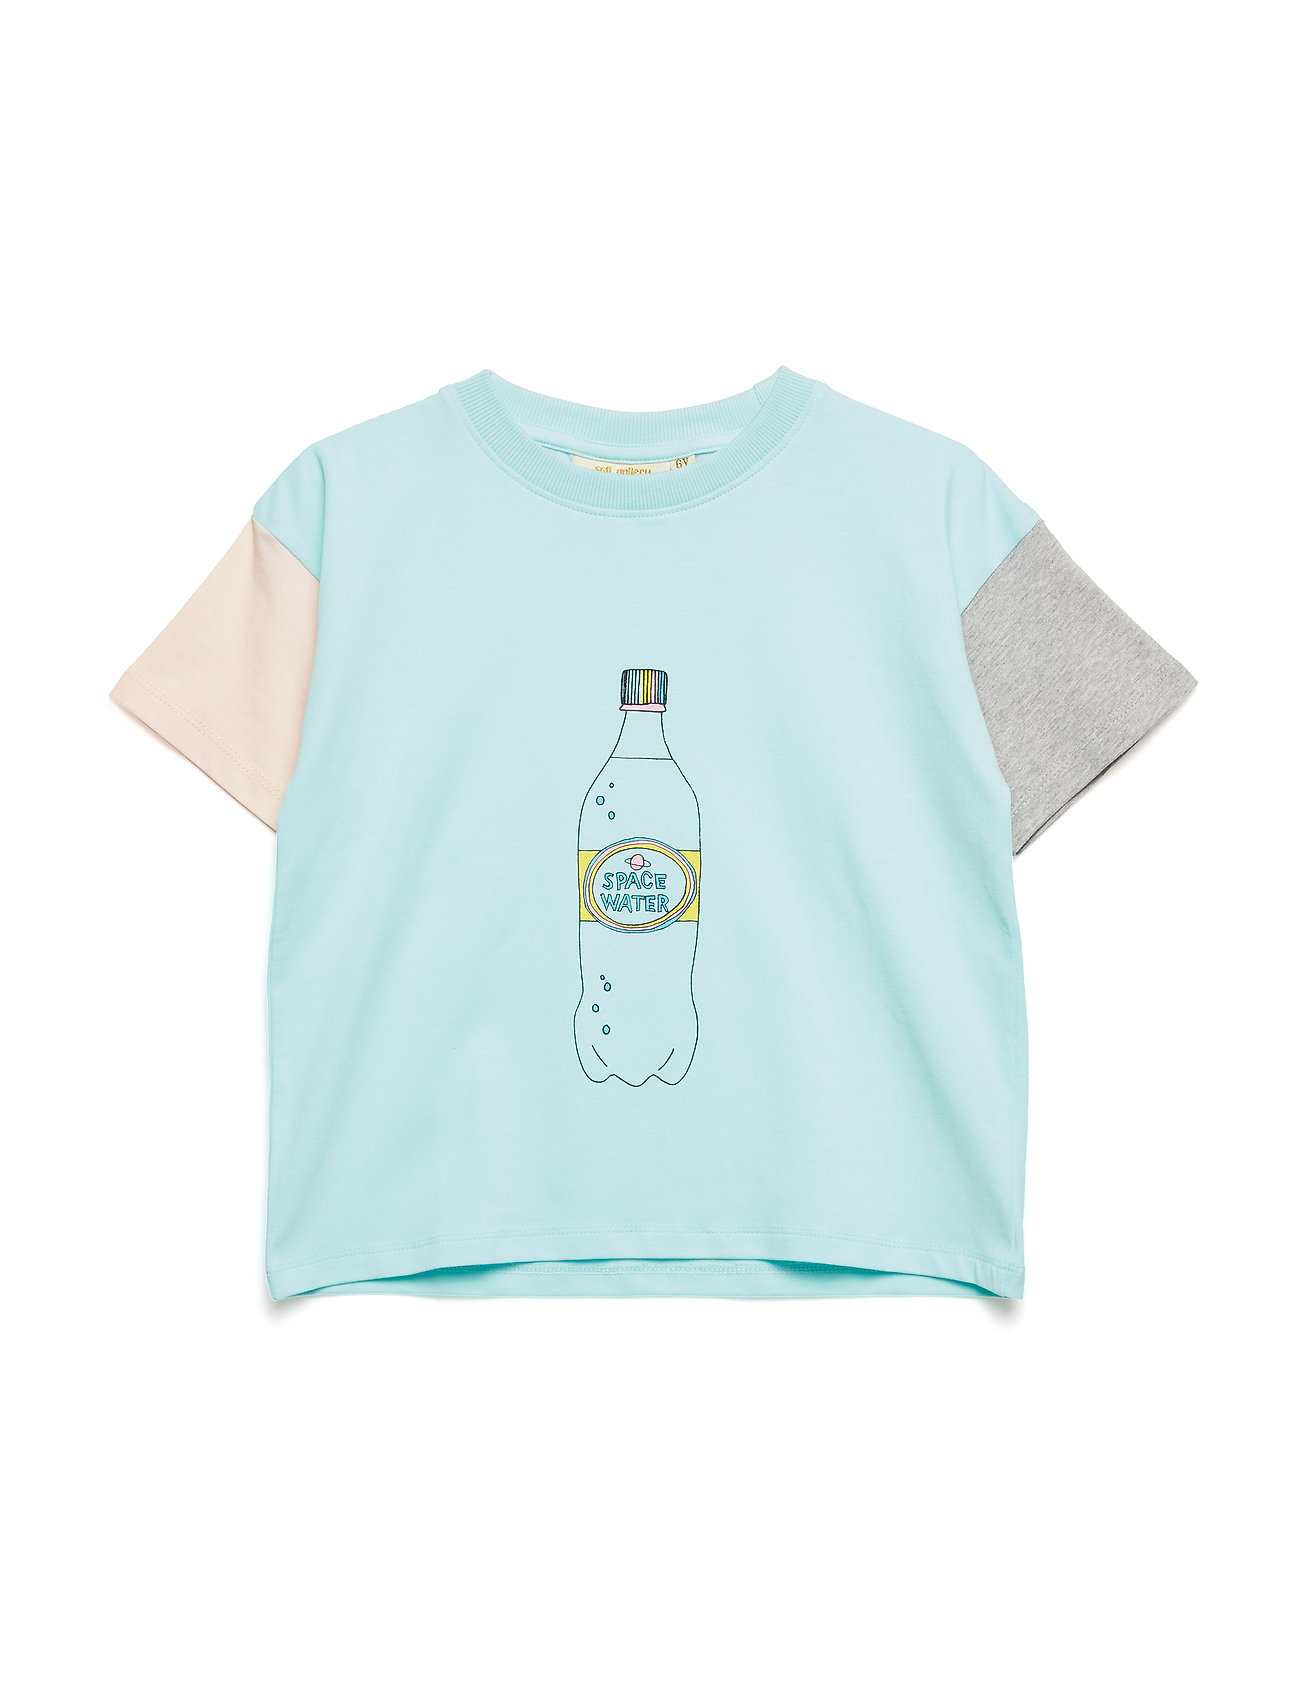 Soft Gallery Dharma T-shirt - BLUE TINT, SPACEWATER